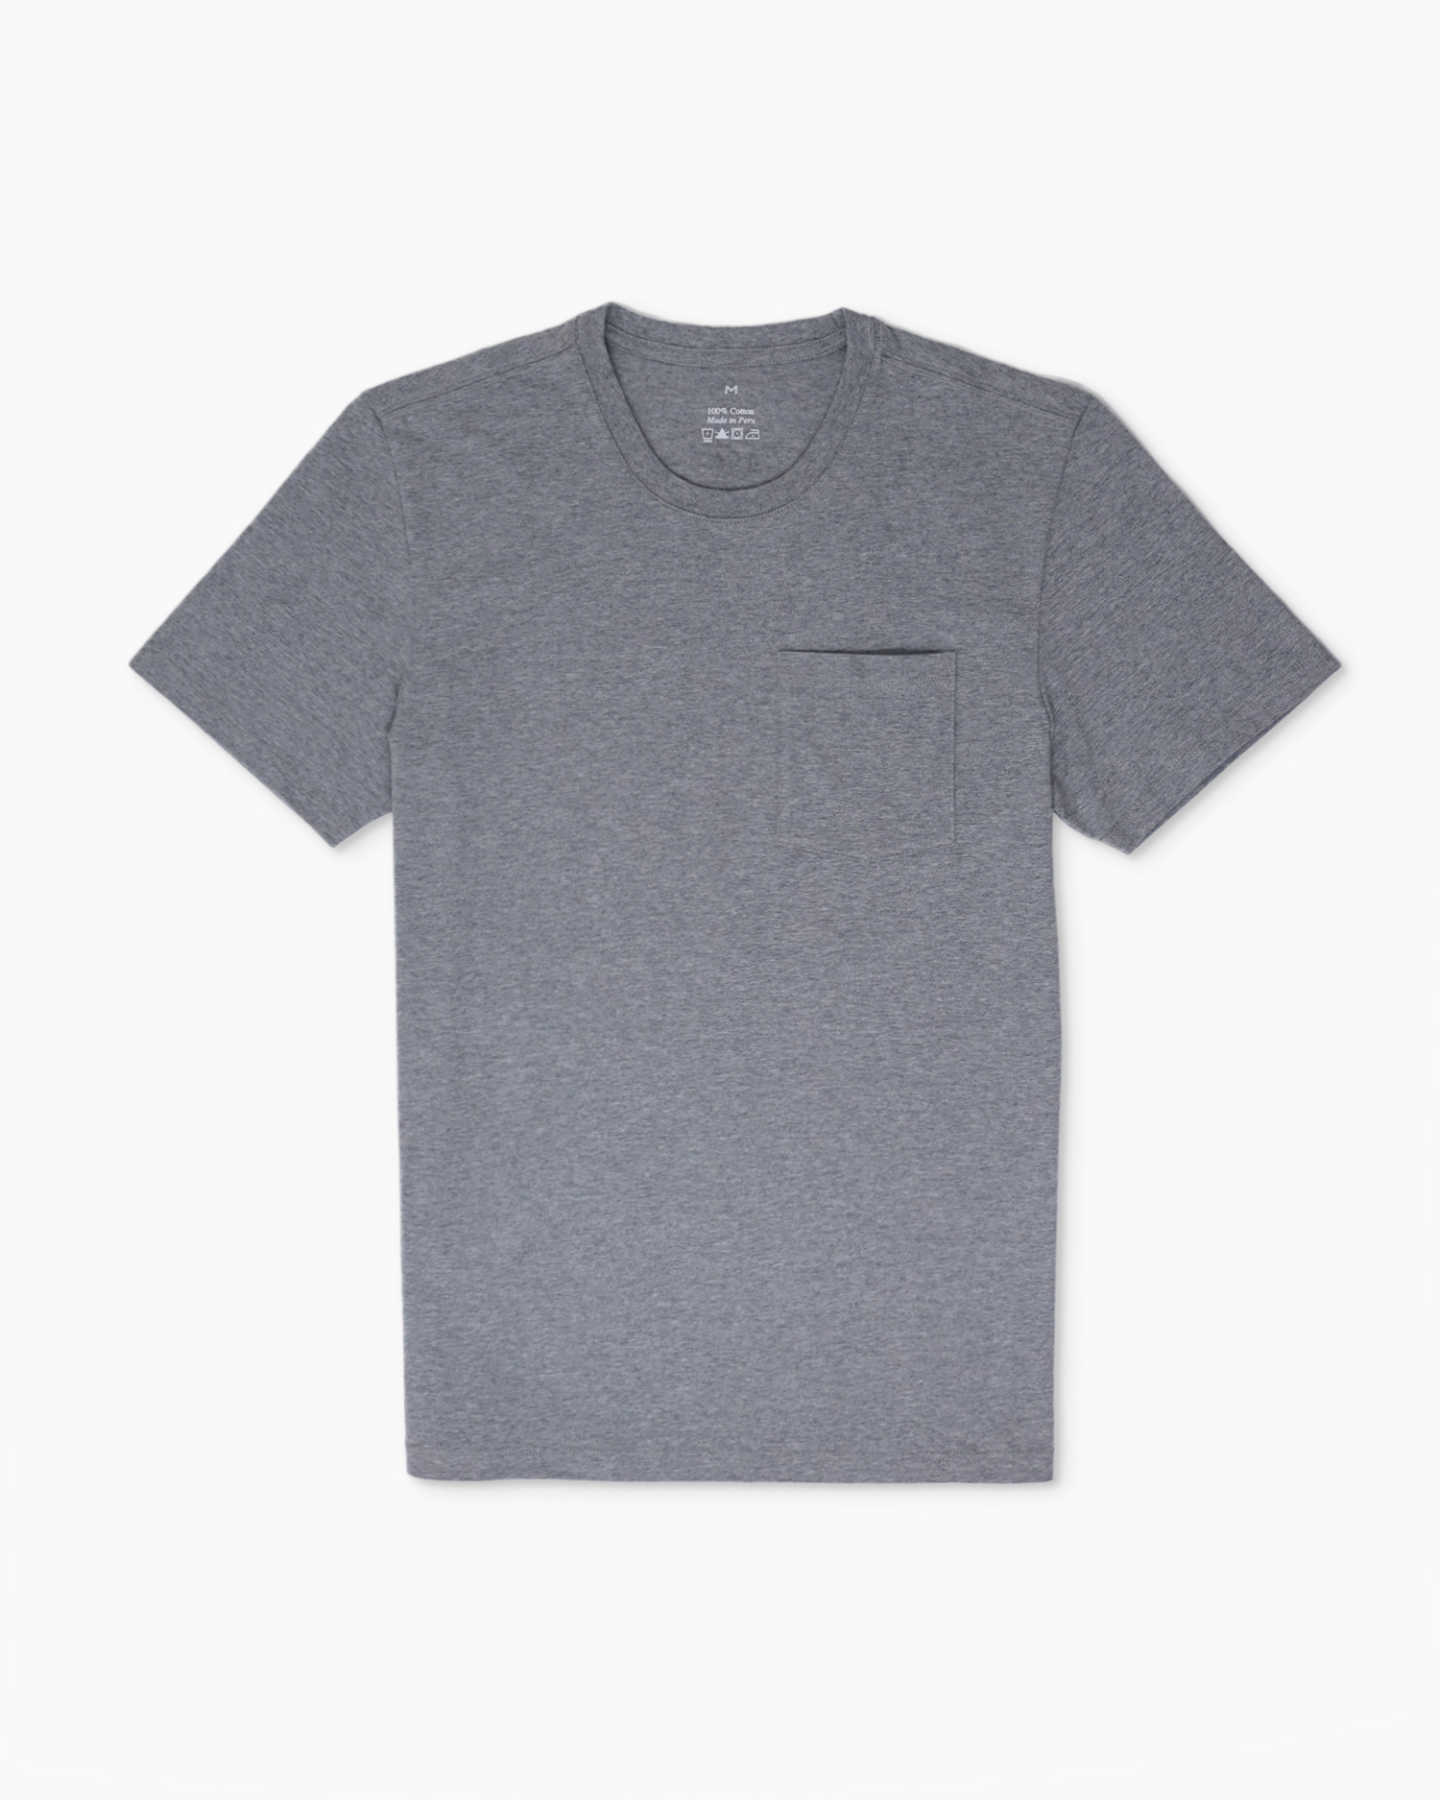 Pair With - Luxe Touch Pima Pocket Tee - Heather Grey